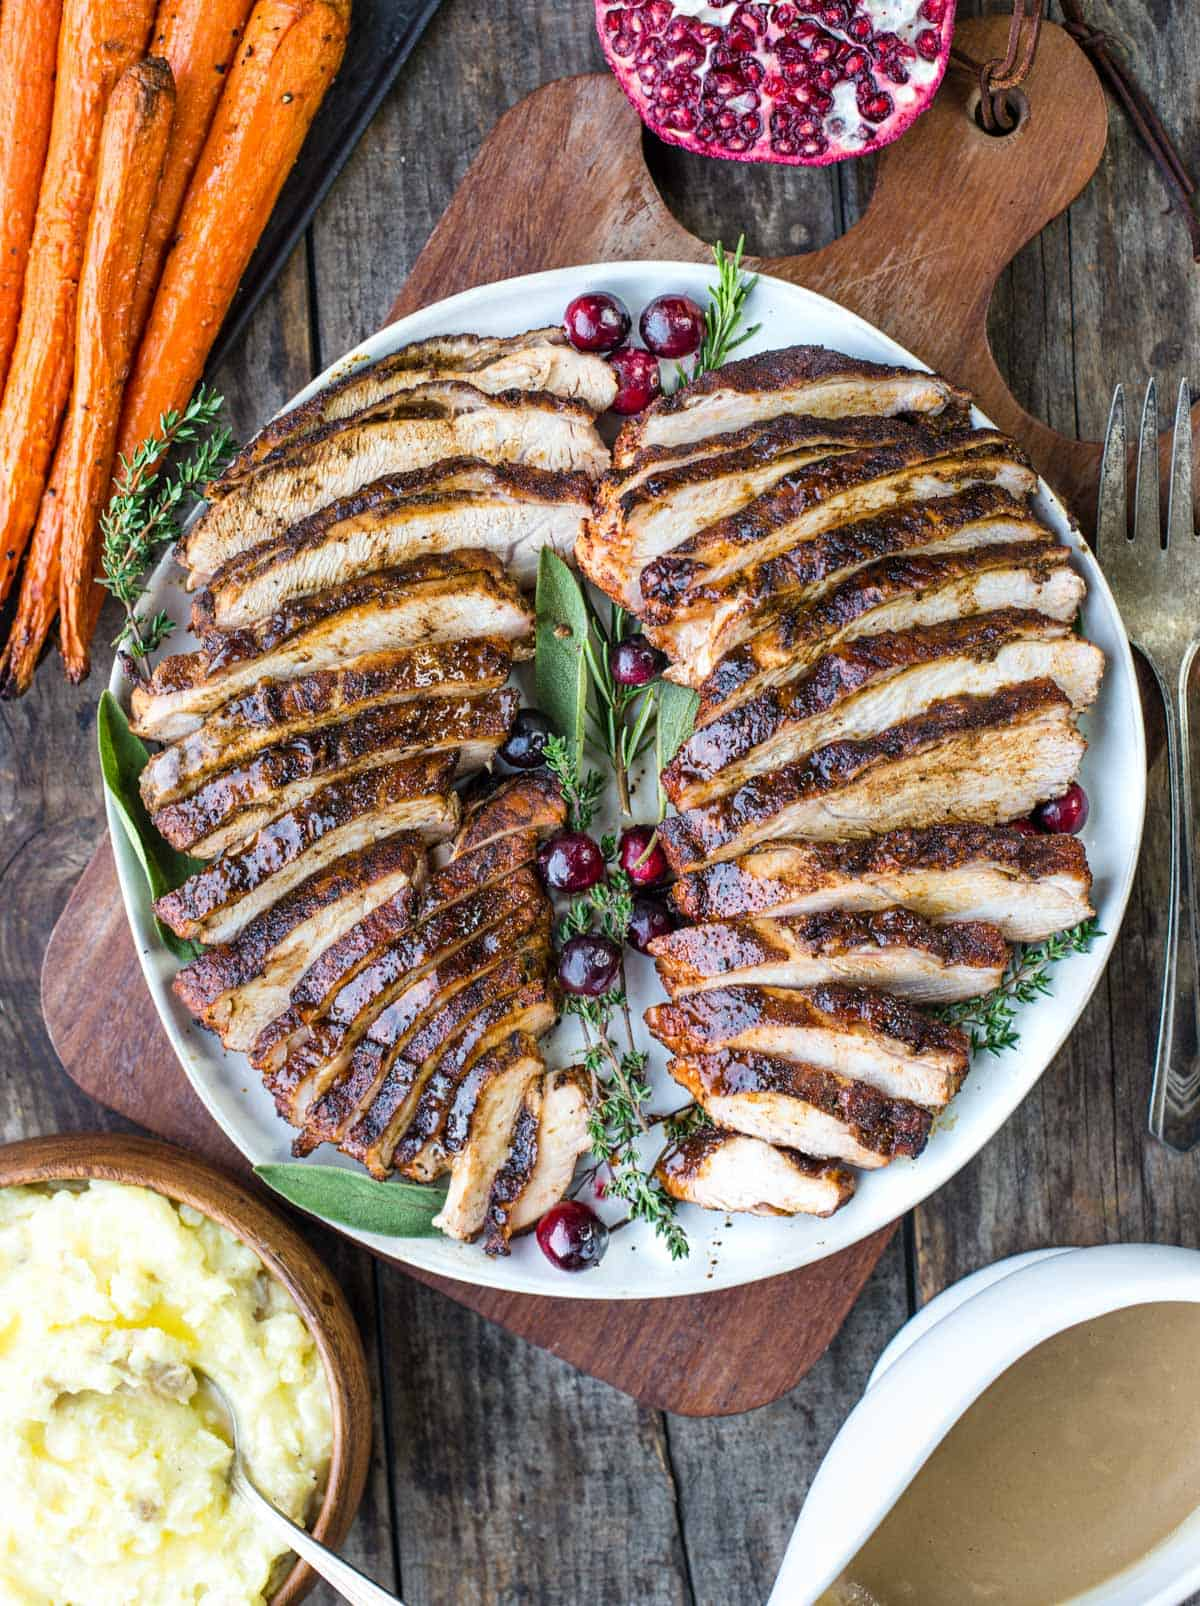 Sliced and grilled cajun spiced turkey breast with gravy and sides.